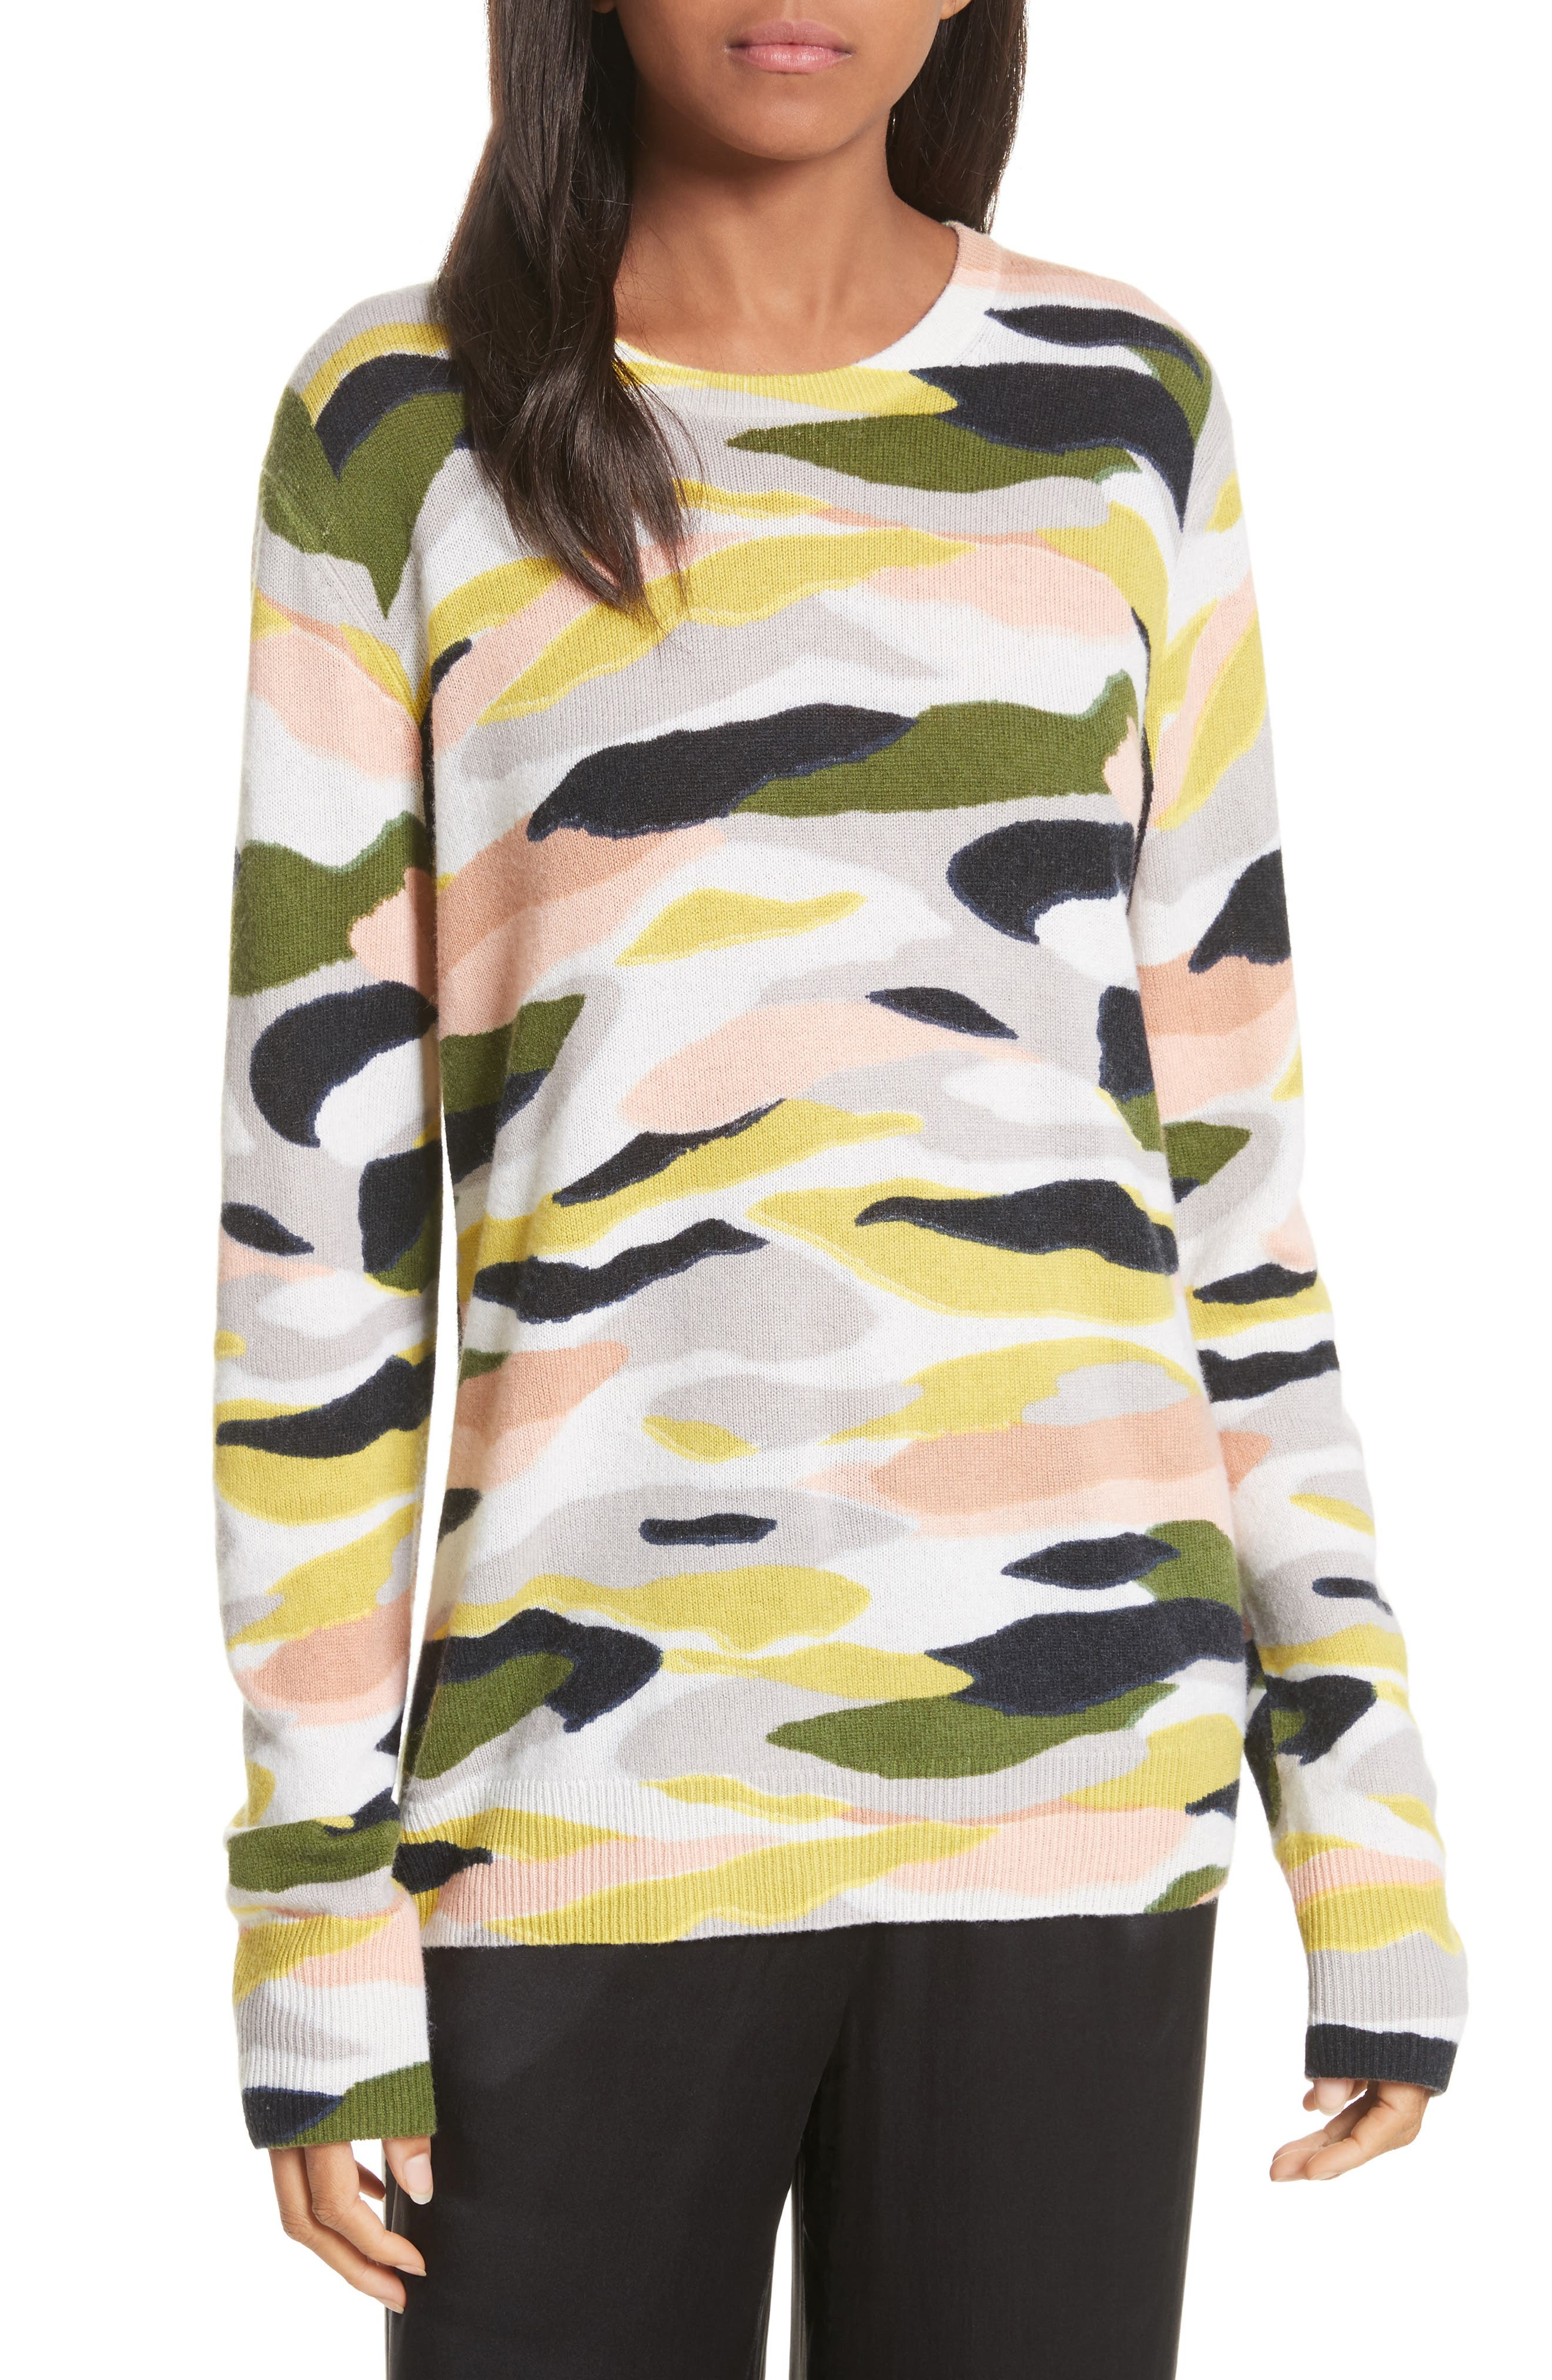 Alternate Image 1 Selected - Equipment Shane Camo Print Cashmere Sweater